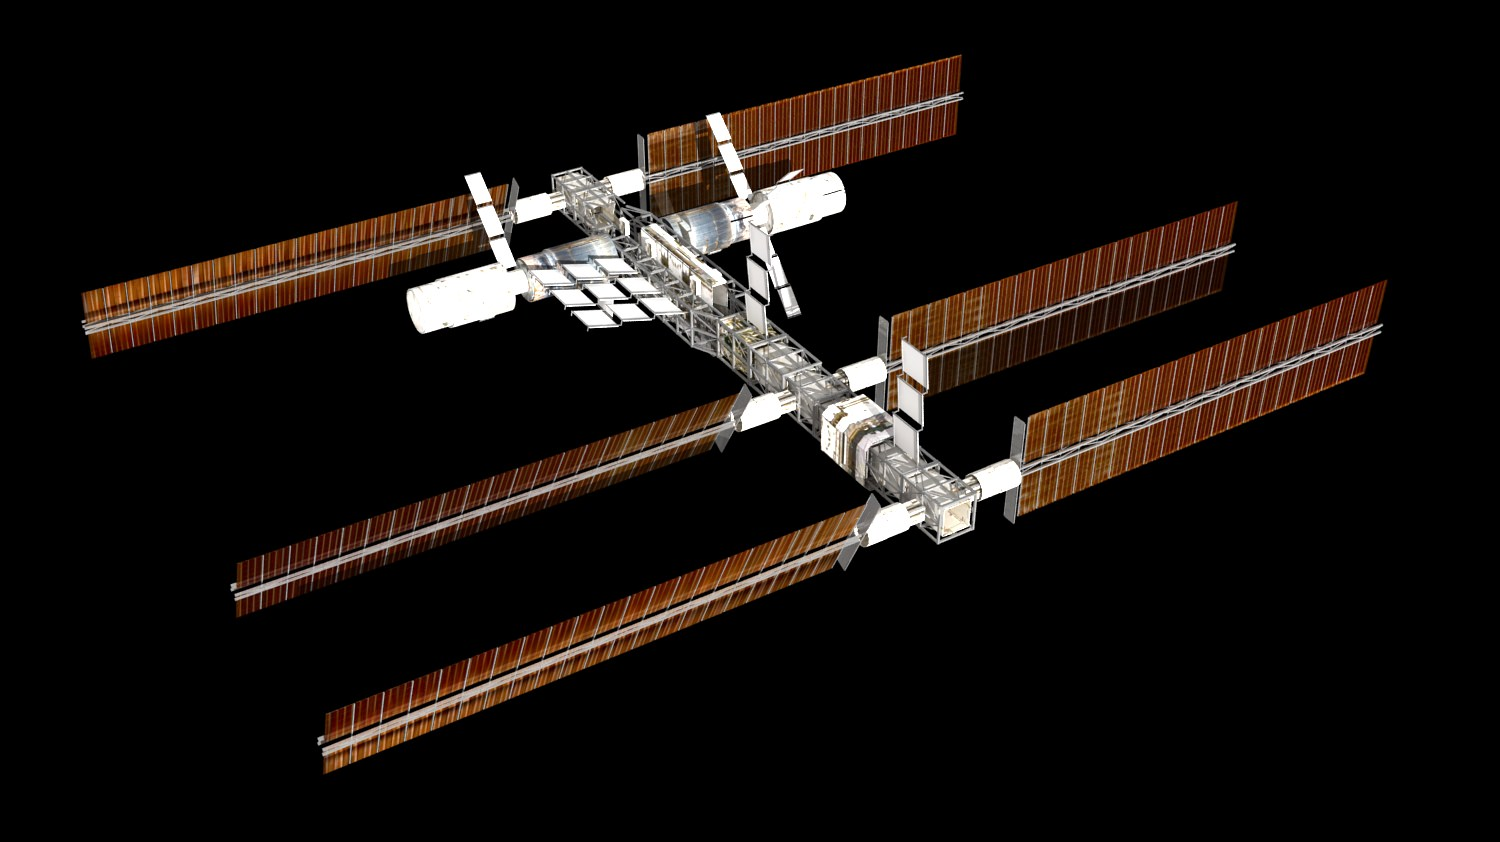 3d model international space station pics about space for Outer space 3d model